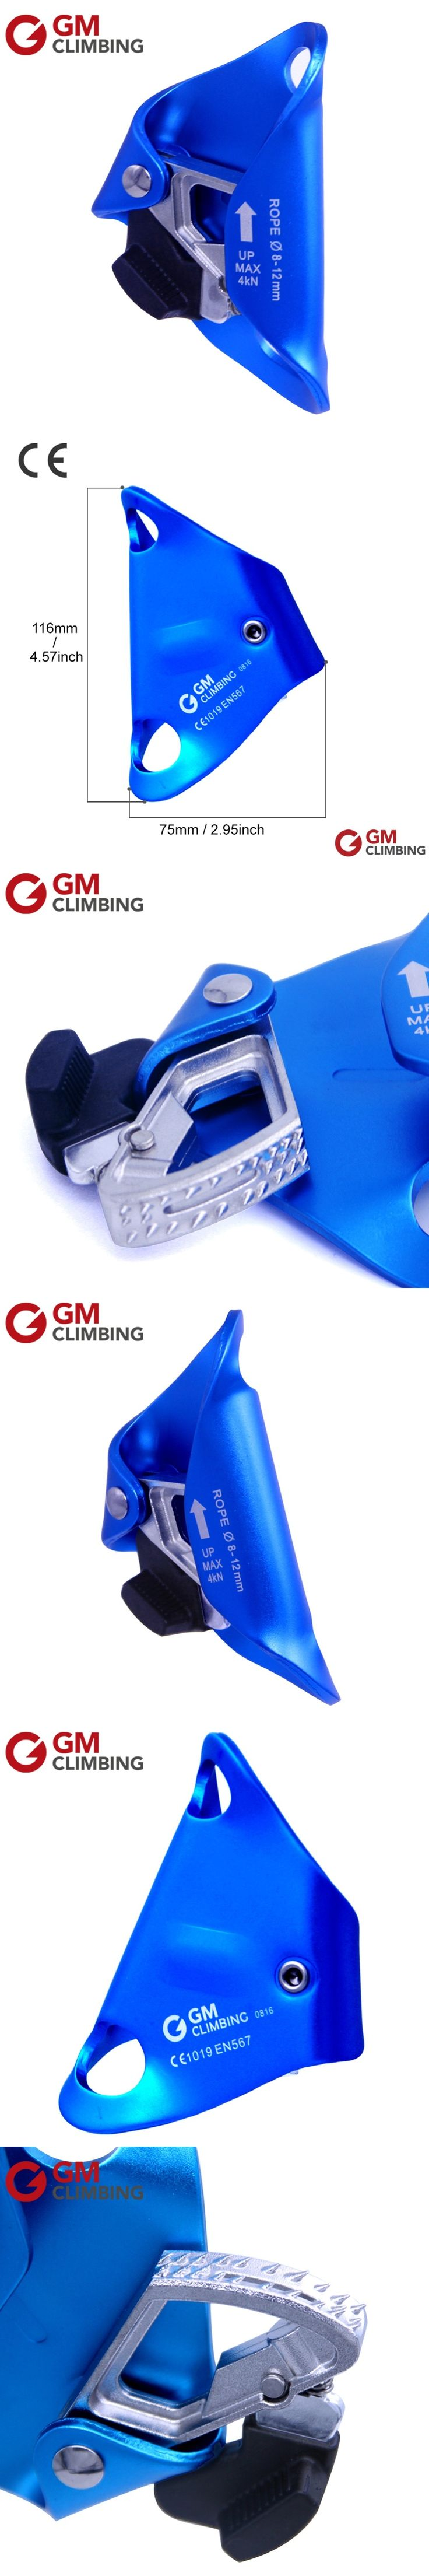 Chest Ascender Climbing Rope Ascender Aluminum Alloy Rappelling Rock Climbing Equipment Mountaineering Caving Arborist Ascent CE